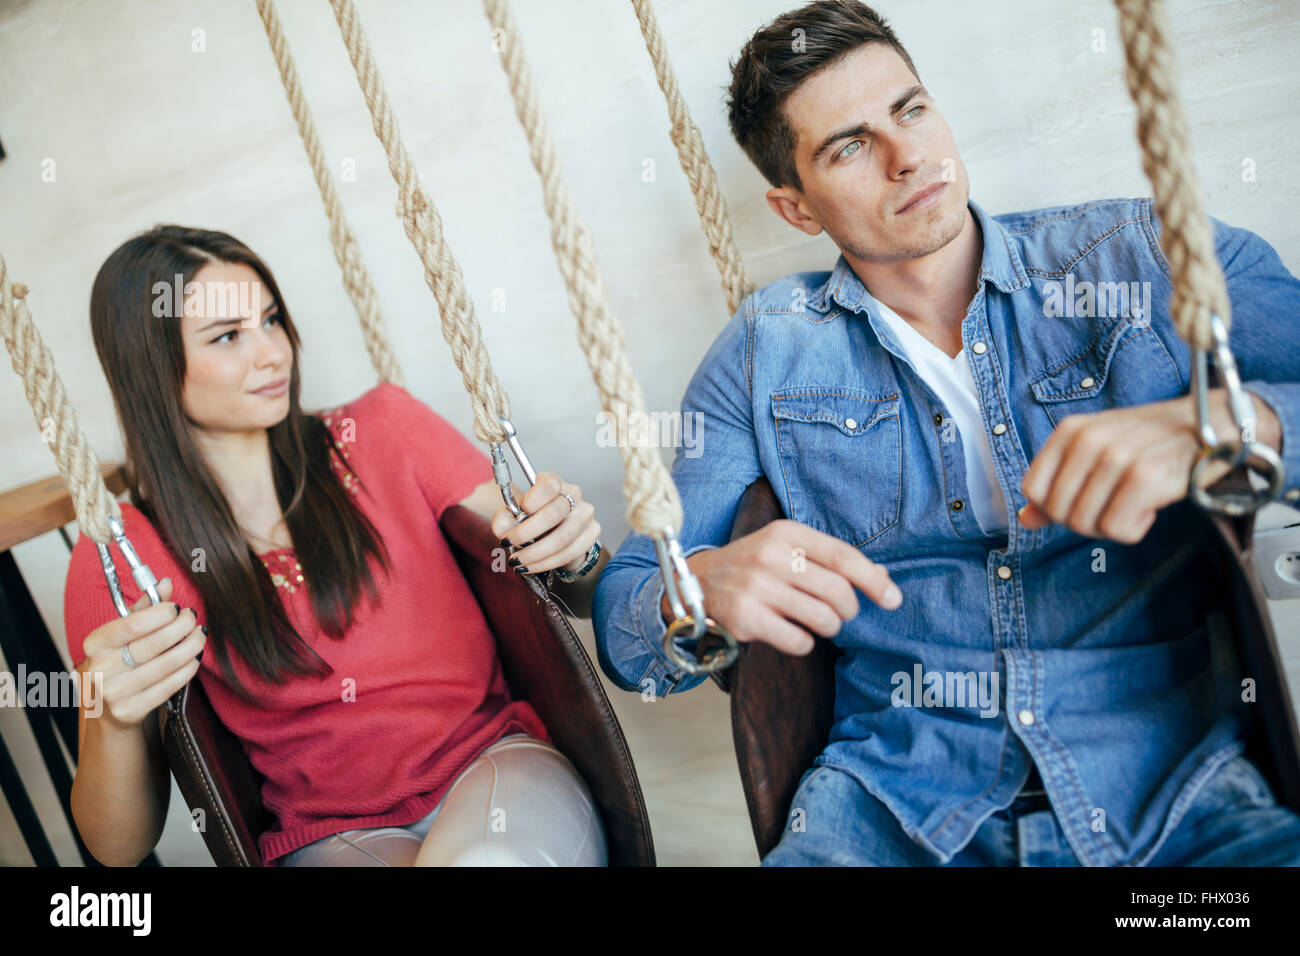 Portrait of couple sitting in swings posing Stock Photo